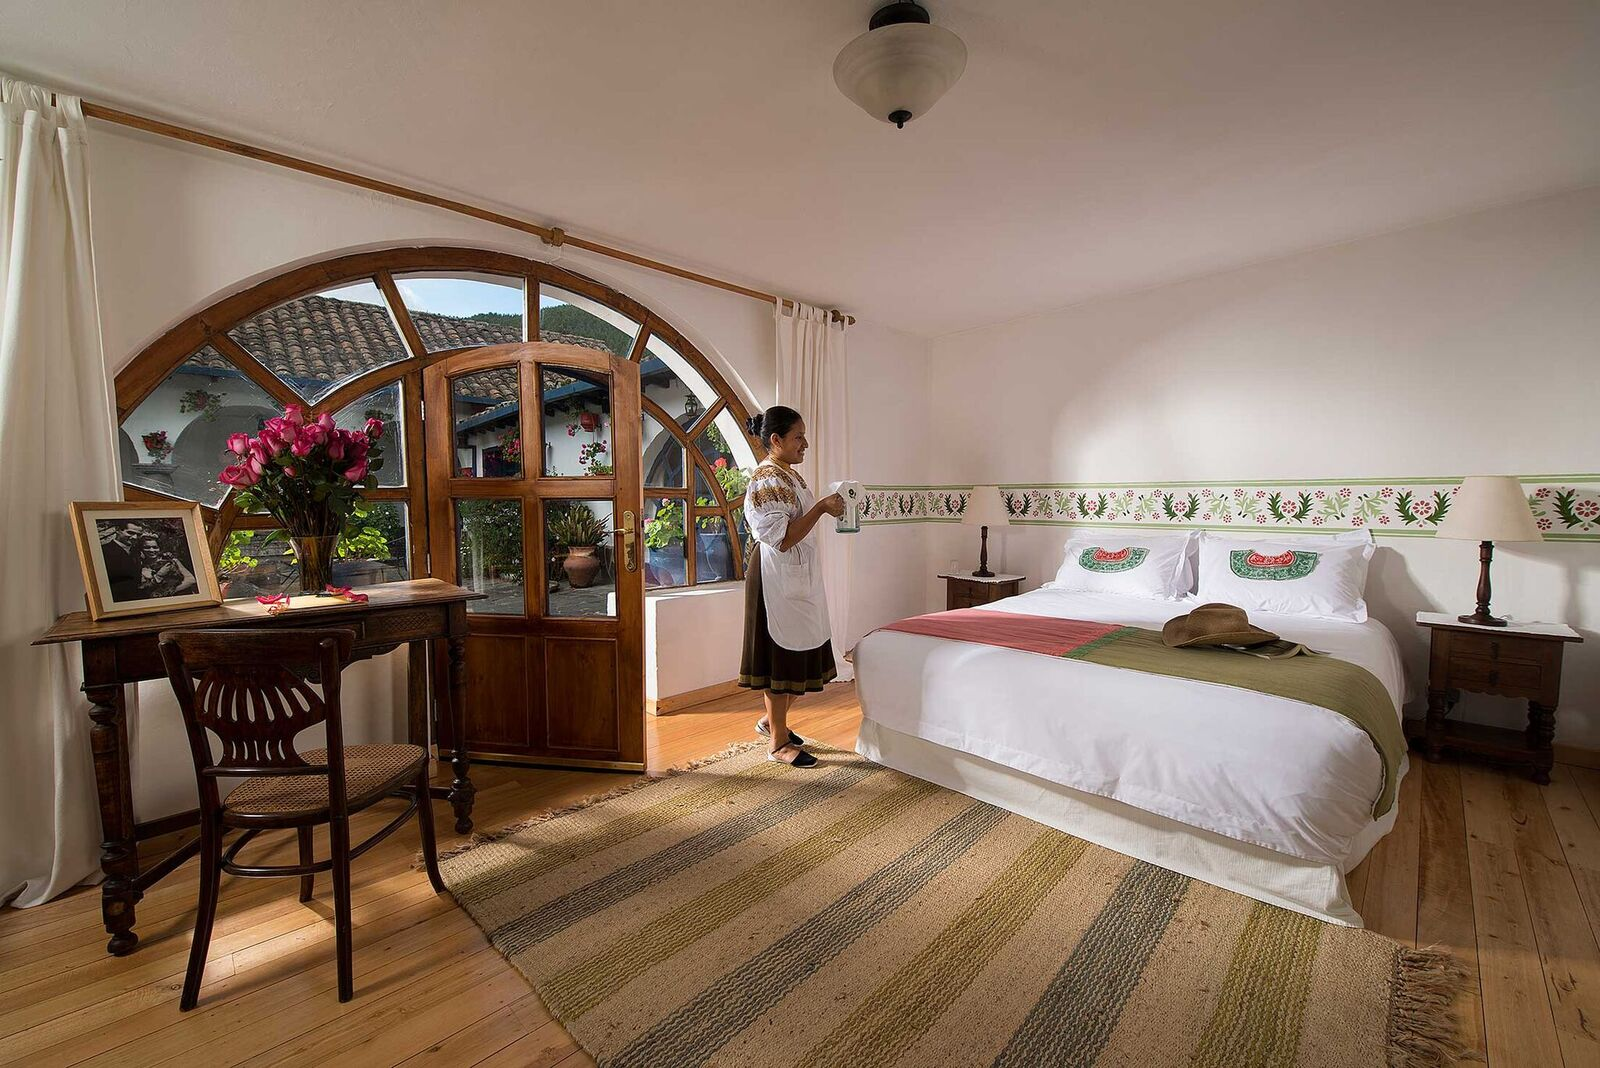 Travel Ecuador - Luxury Accomodations